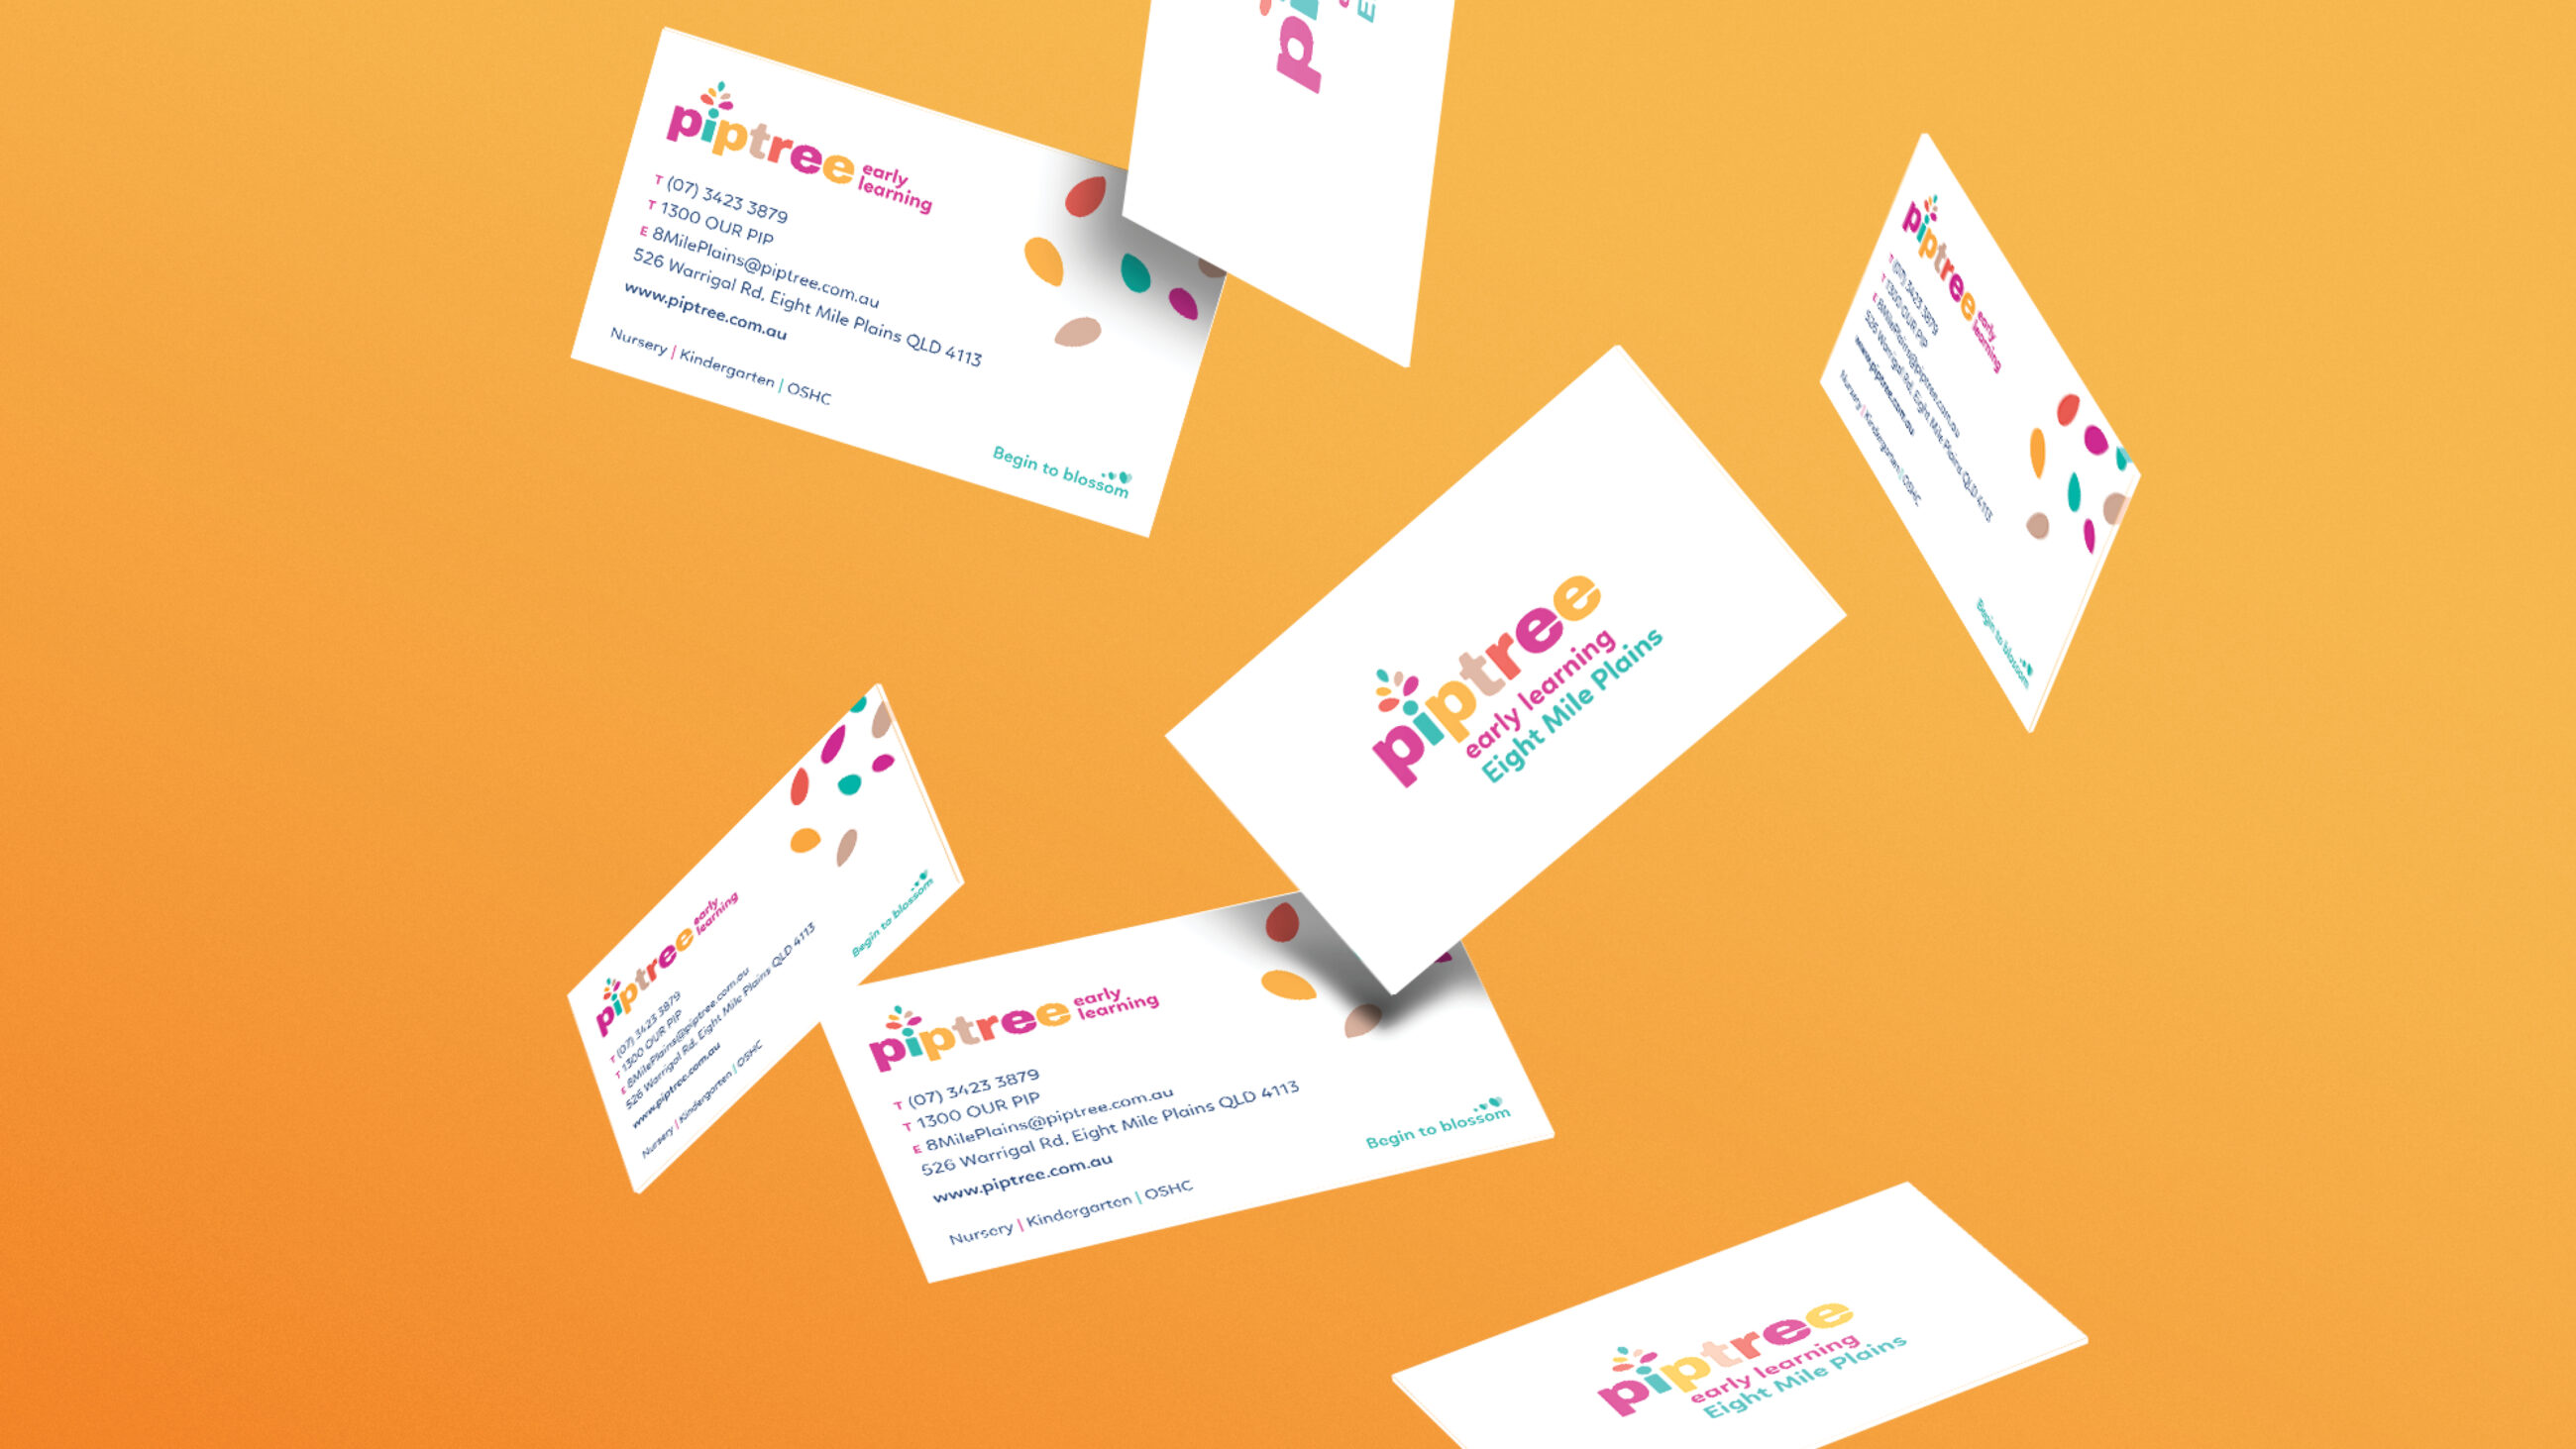 Piptree Early Learning - Business cards